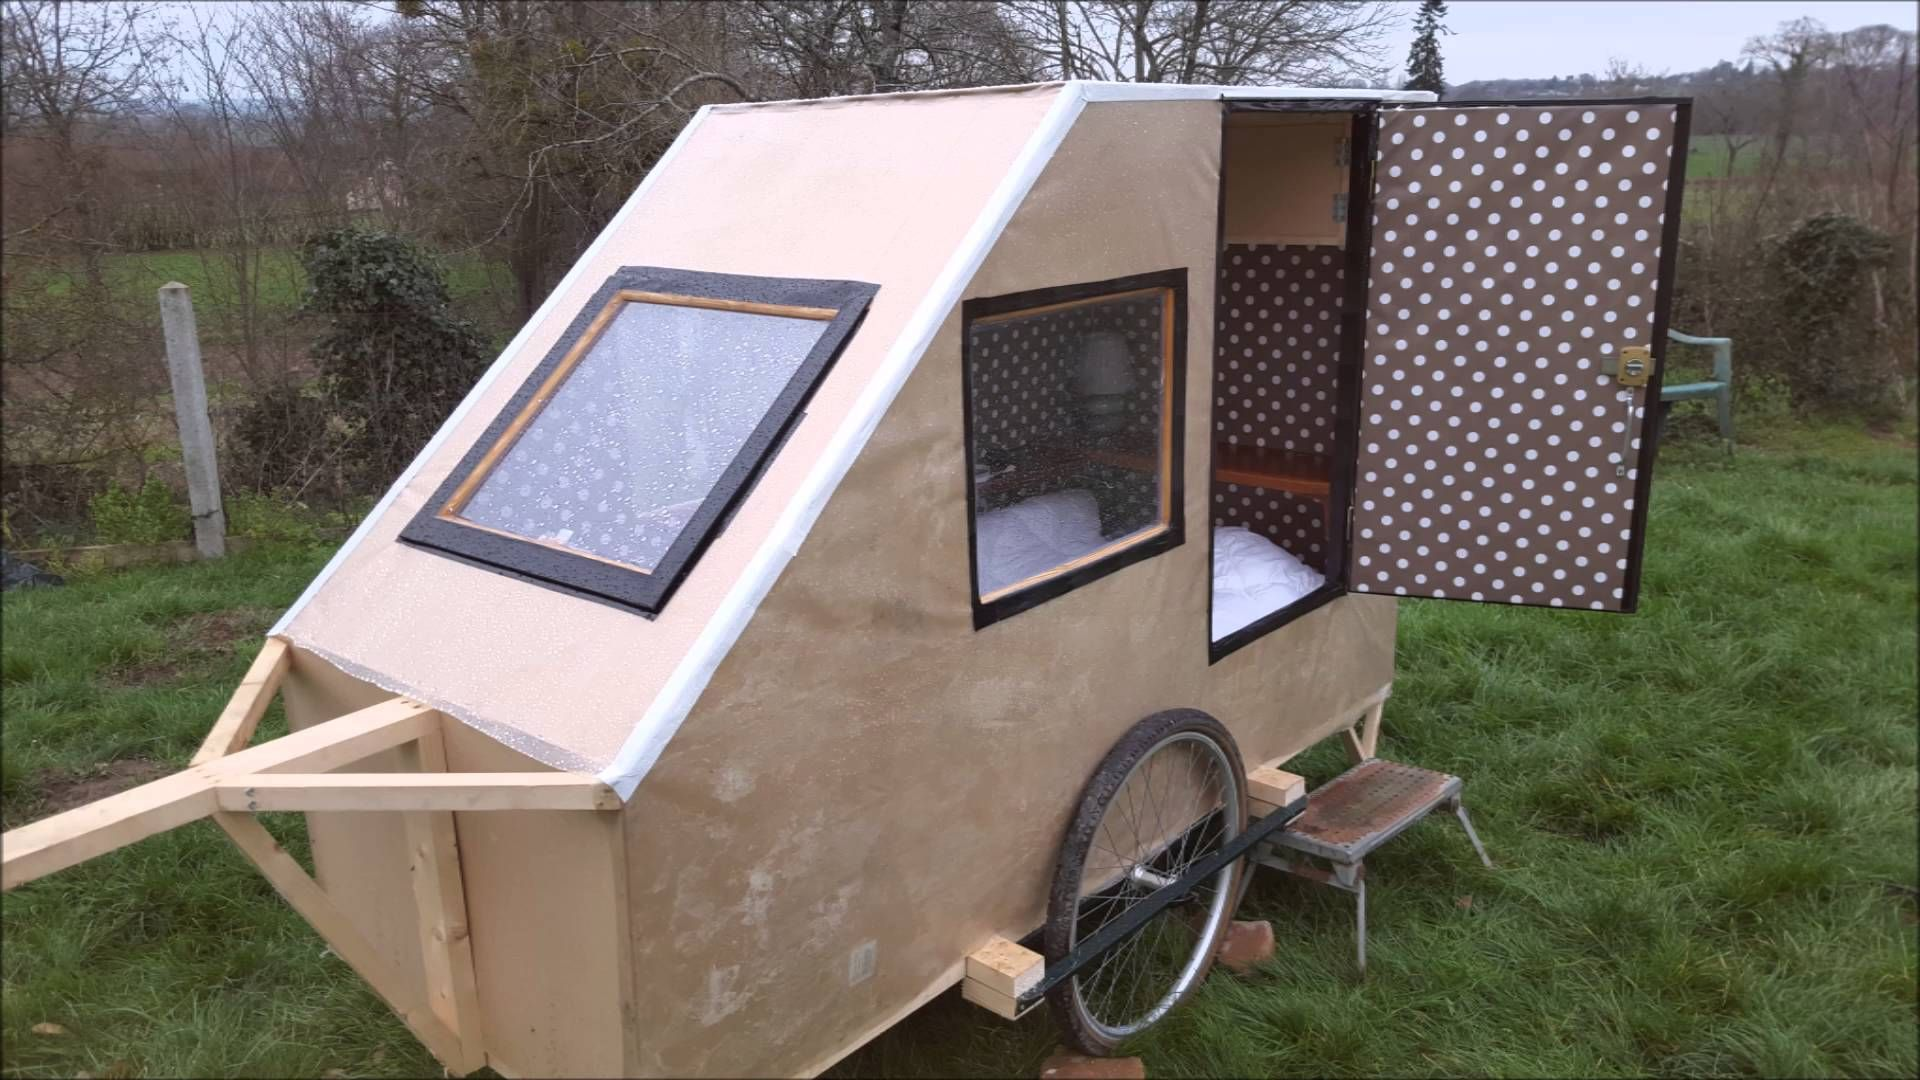 caravane pour velo fait maison alternative housing. Black Bedroom Furniture Sets. Home Design Ideas